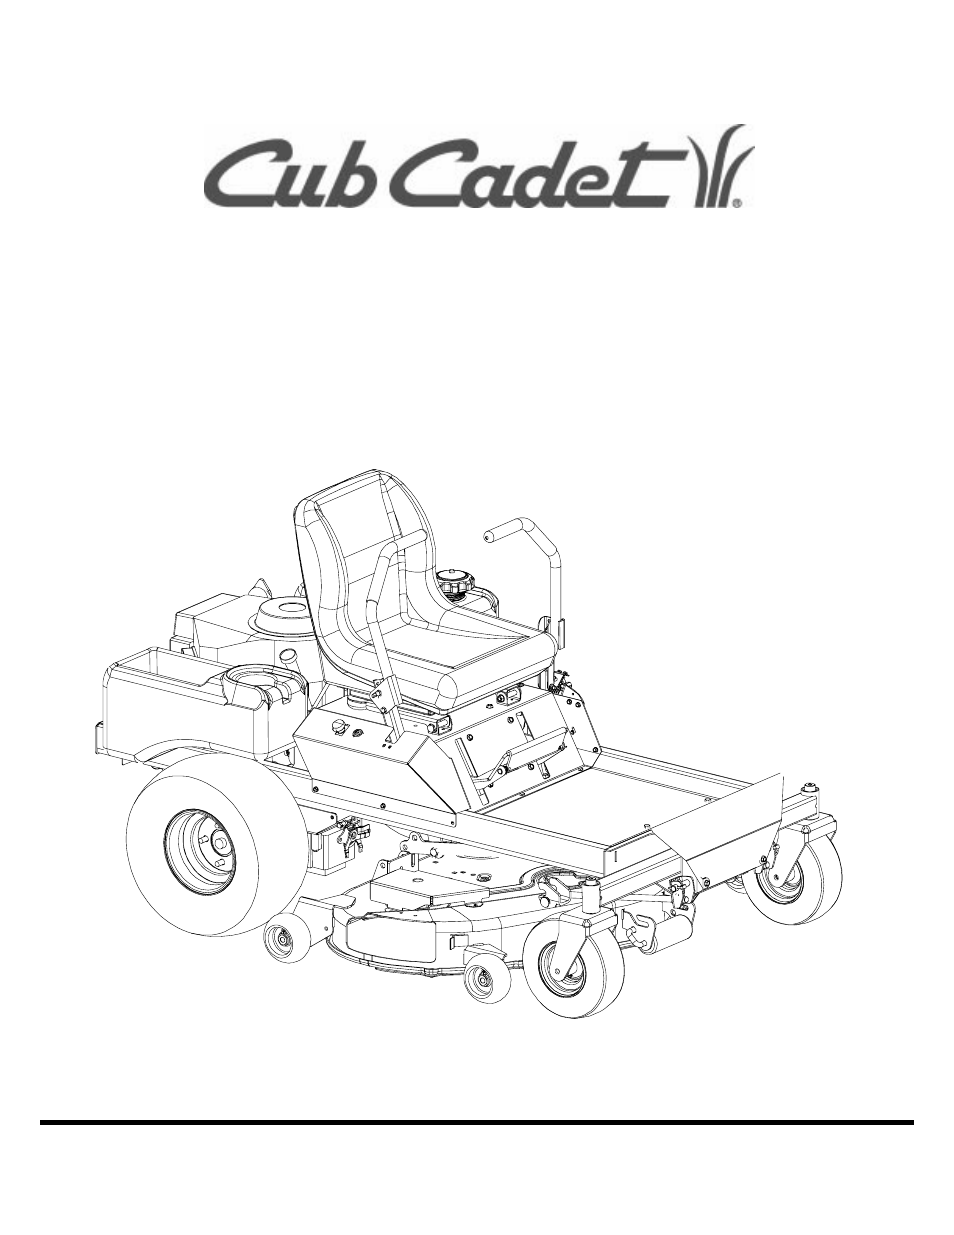 Wiring Diagram For Cub Cadet Z Force : Cub cadet z force wiring diagram